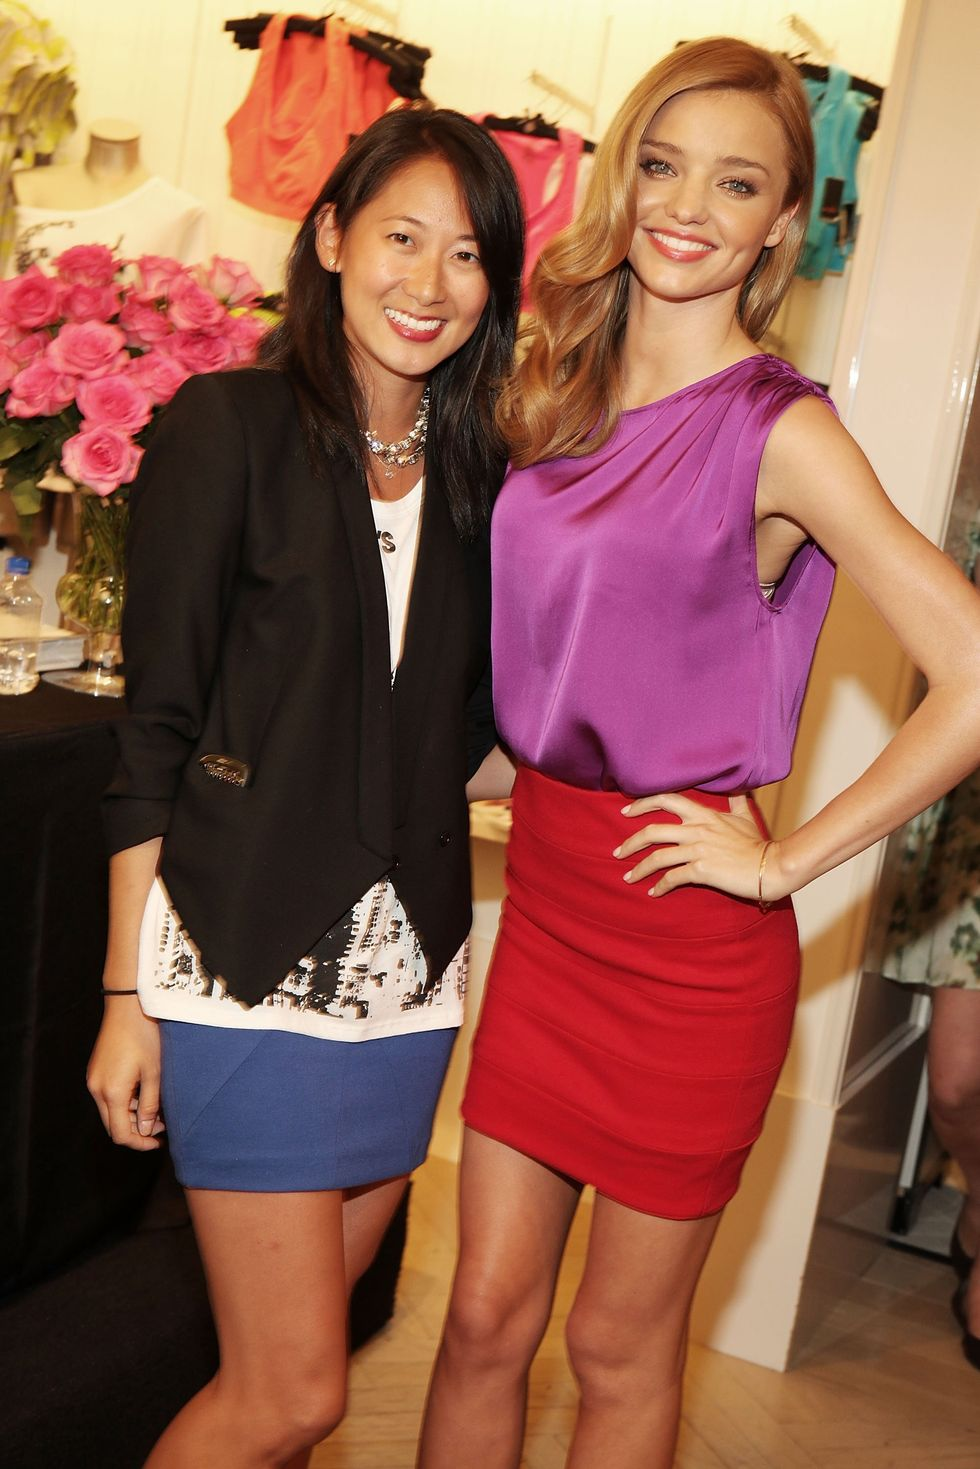 miranda-kerr-fashions-night-out-event-in-new-york-01